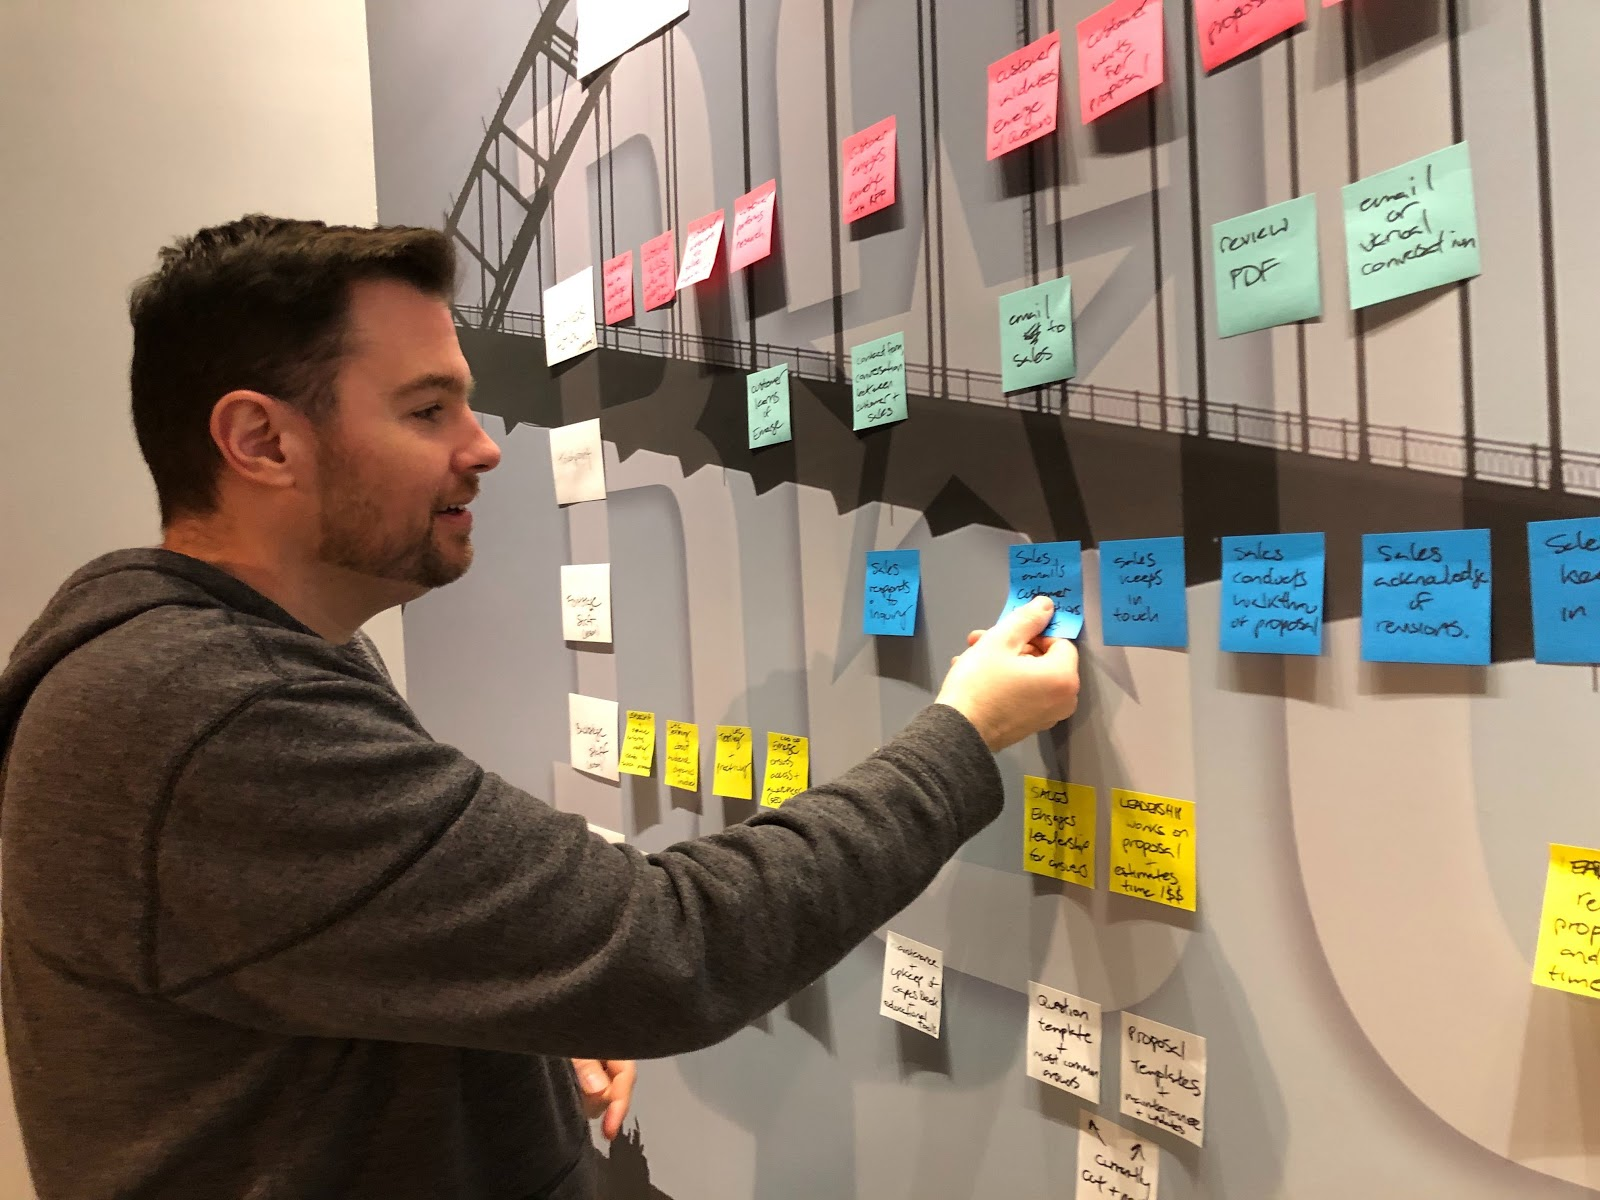 Working on a service blueprint with sticky notes